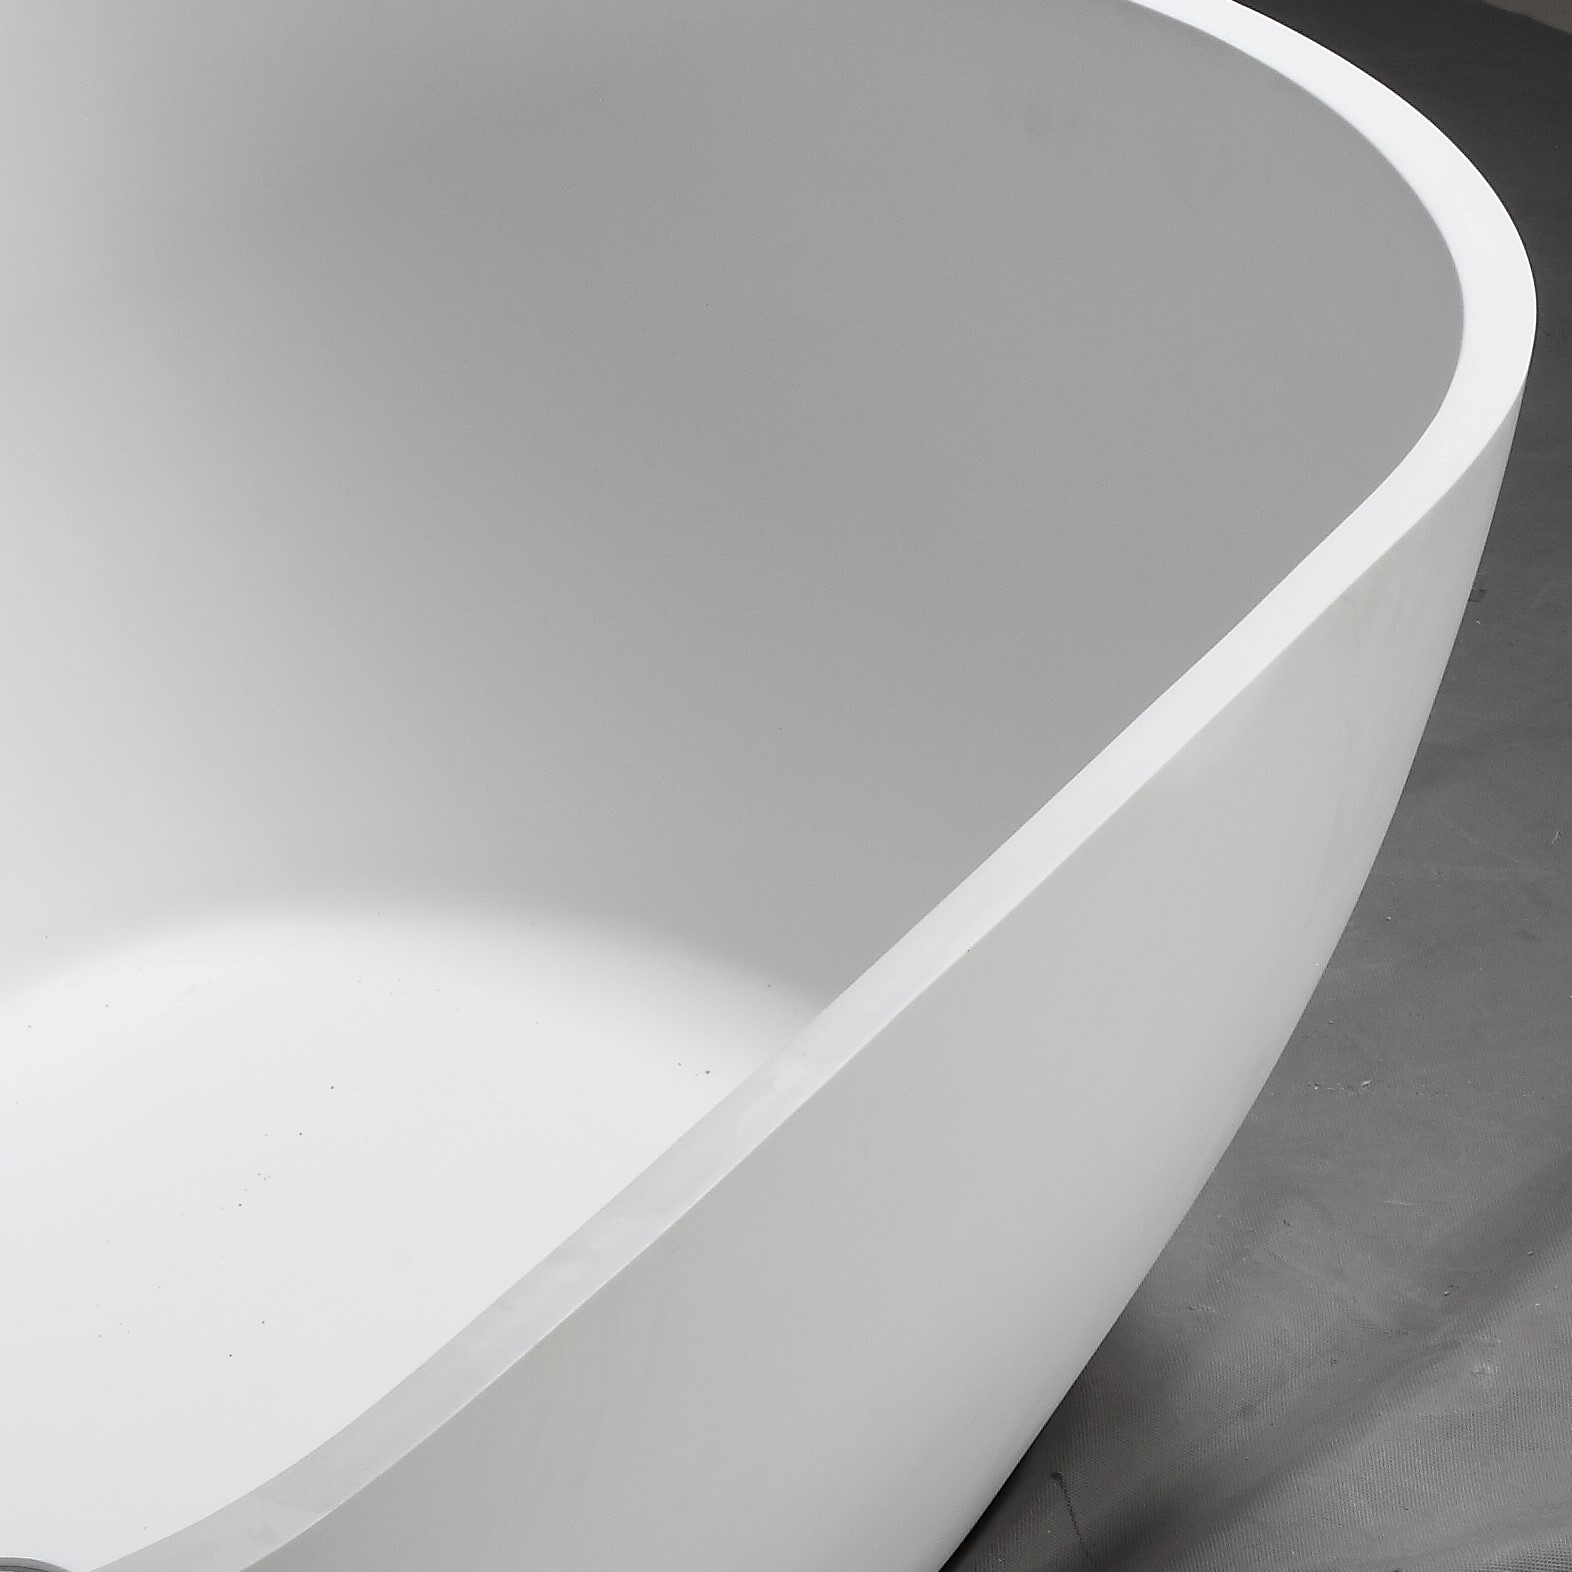 Bellissimo-Solid Surface Resin Stone Bathtub Bs-8649 | Solid Surface Bathtub-7